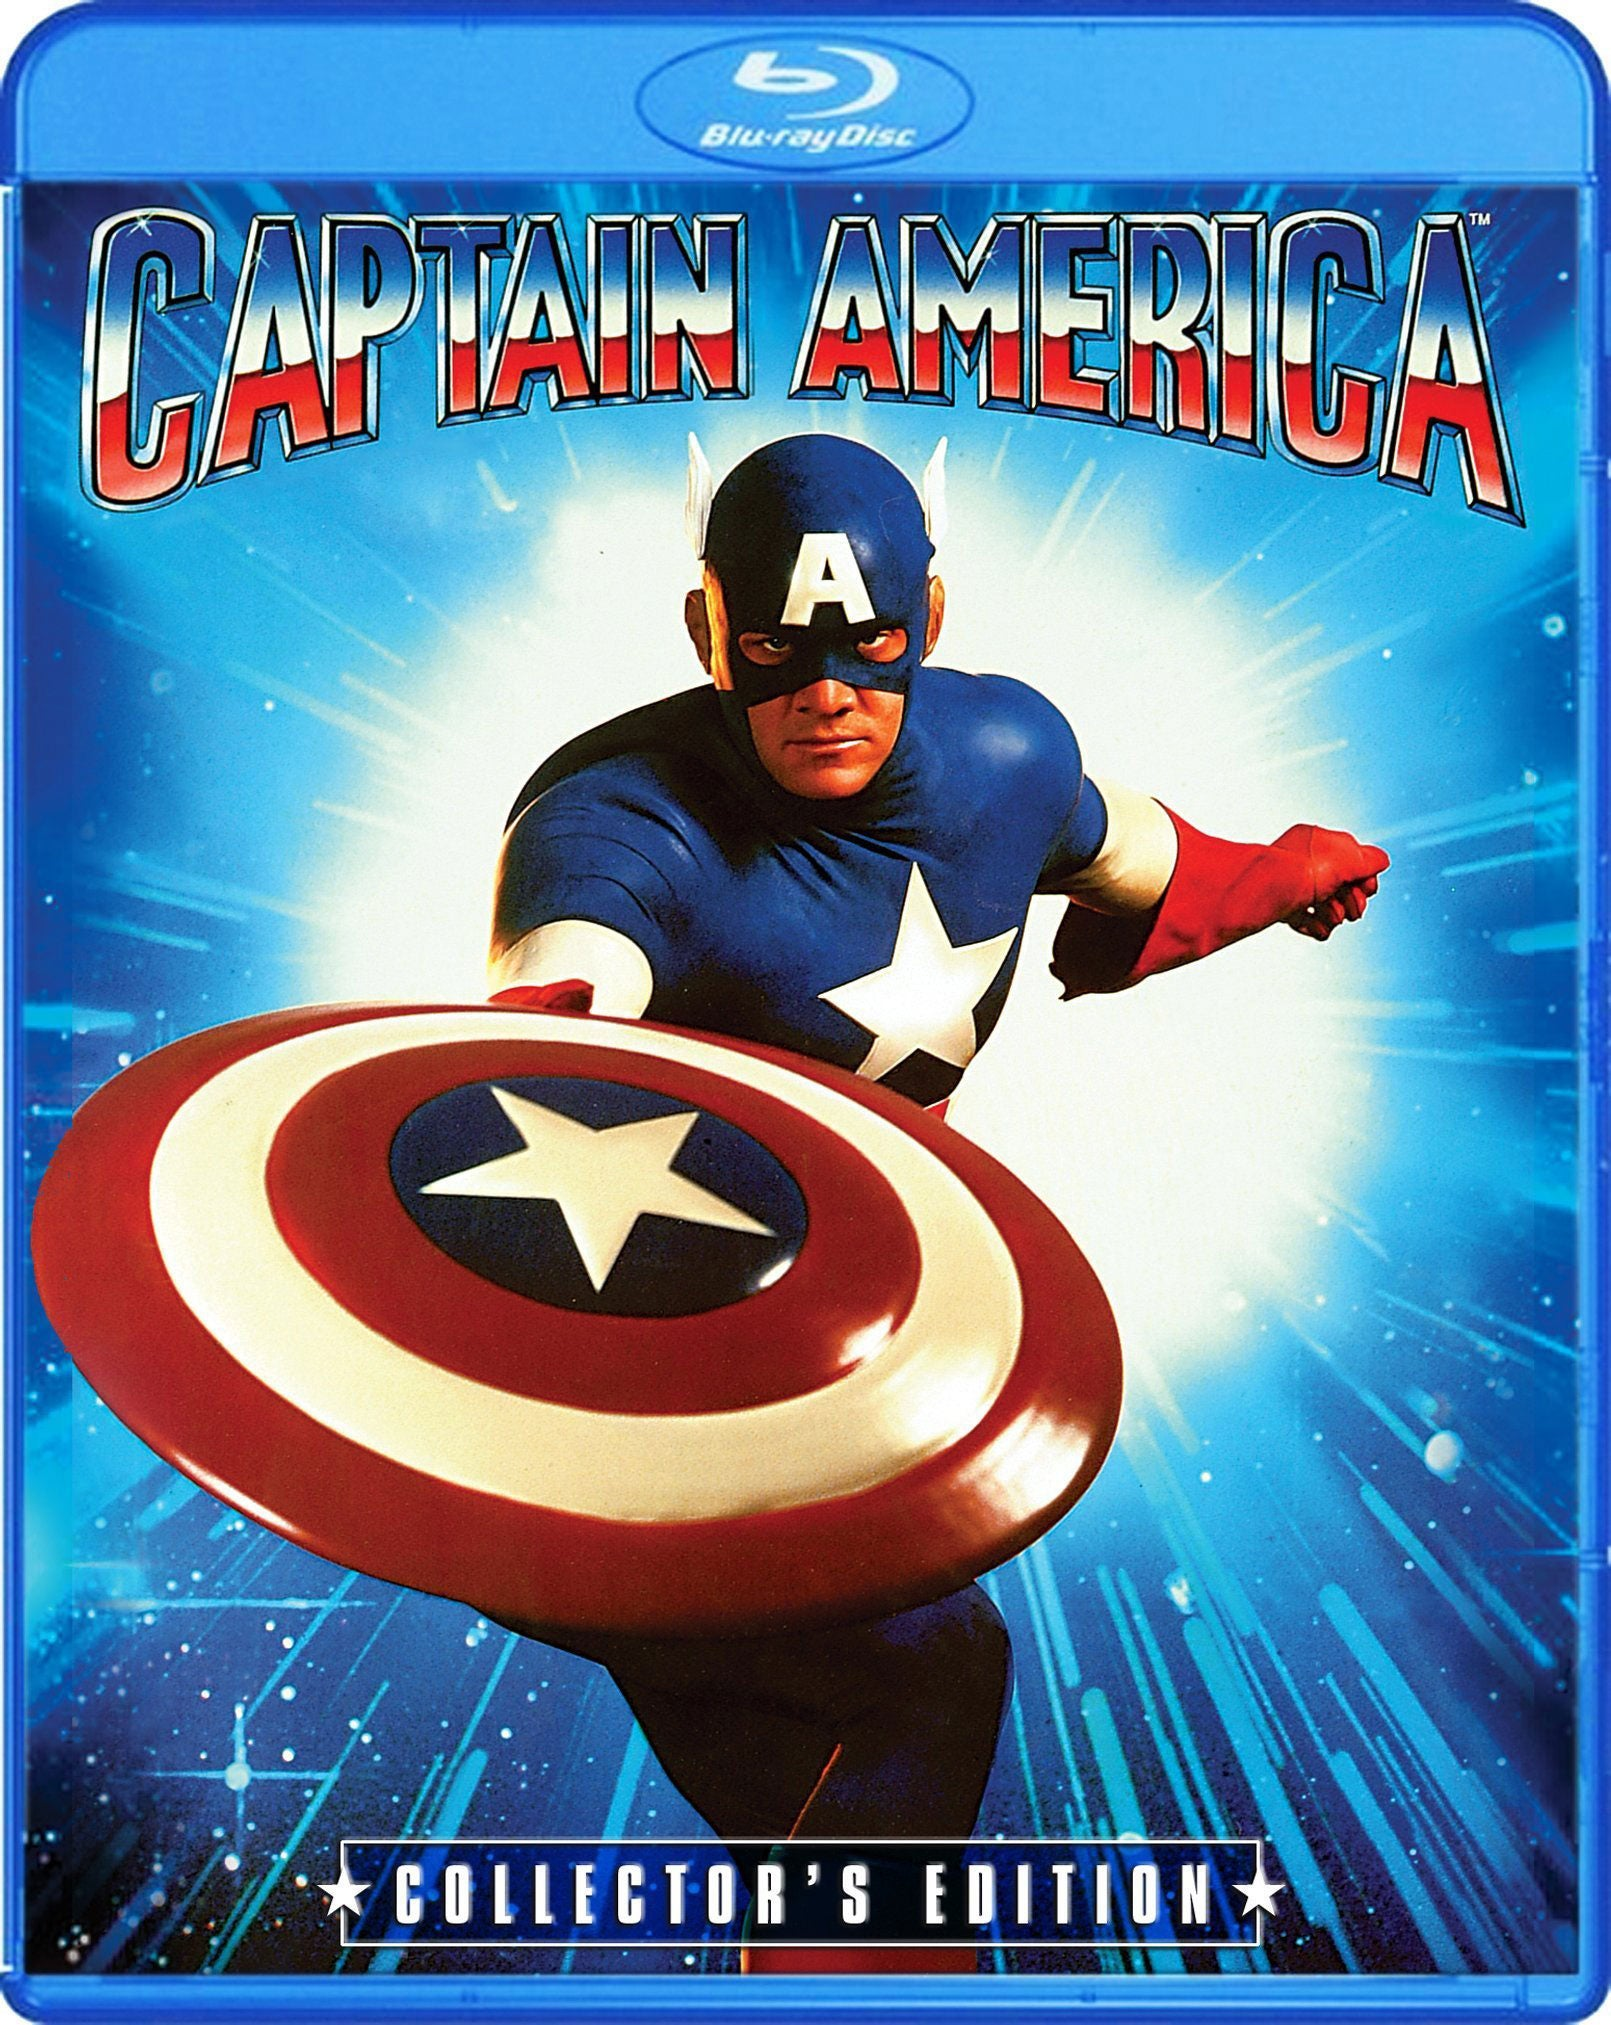 Captain America (Collector's Edition) (Blu-ray Disc)